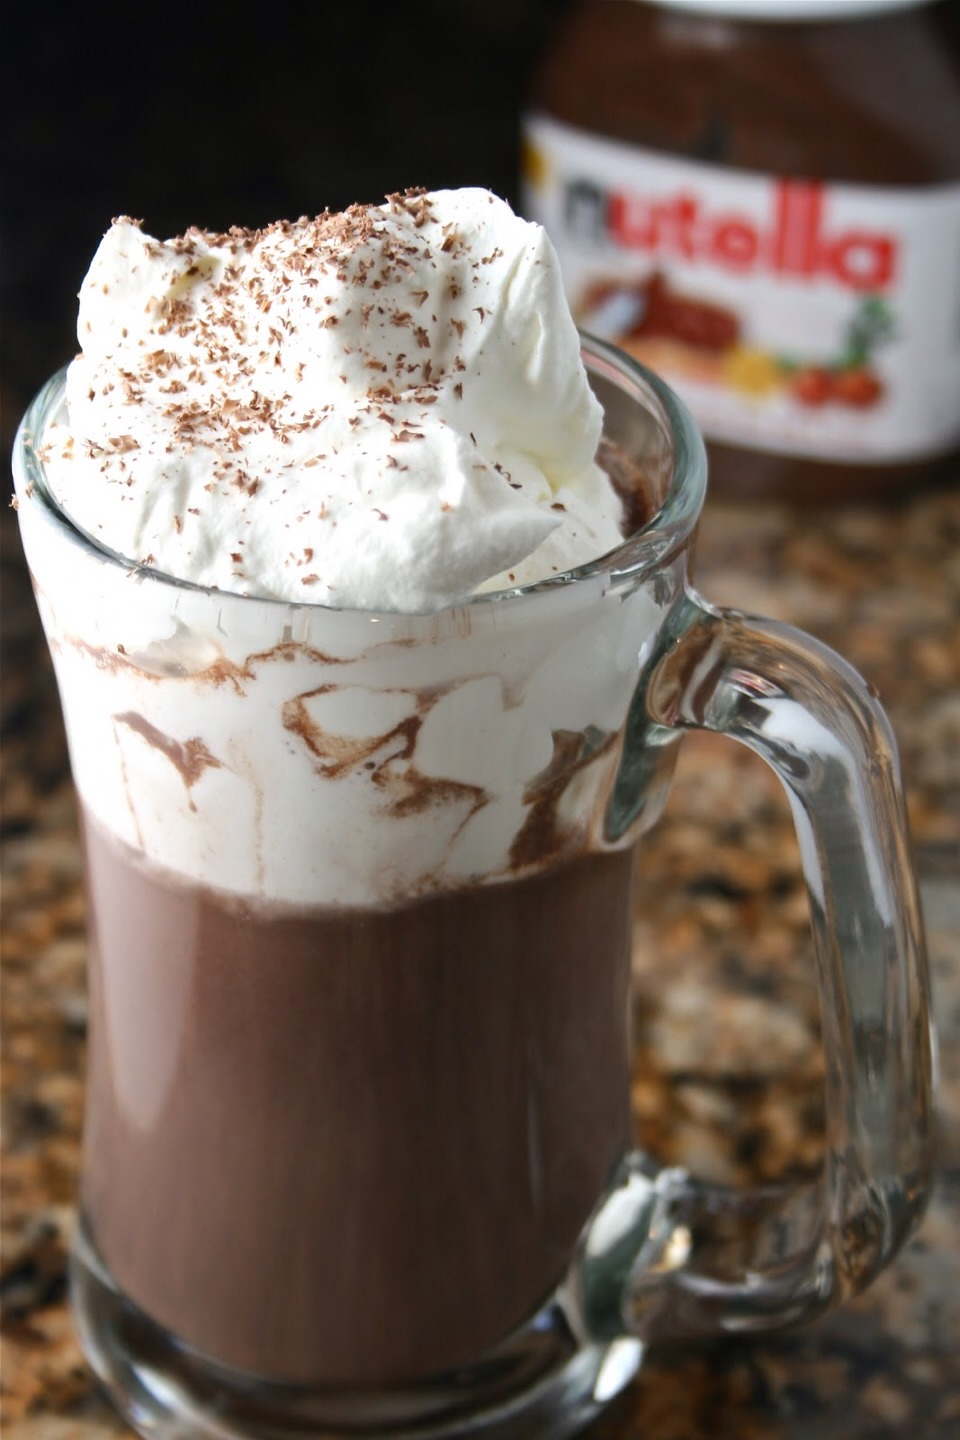 Put one cup of milk and one spoonful of Nutella in a mug.